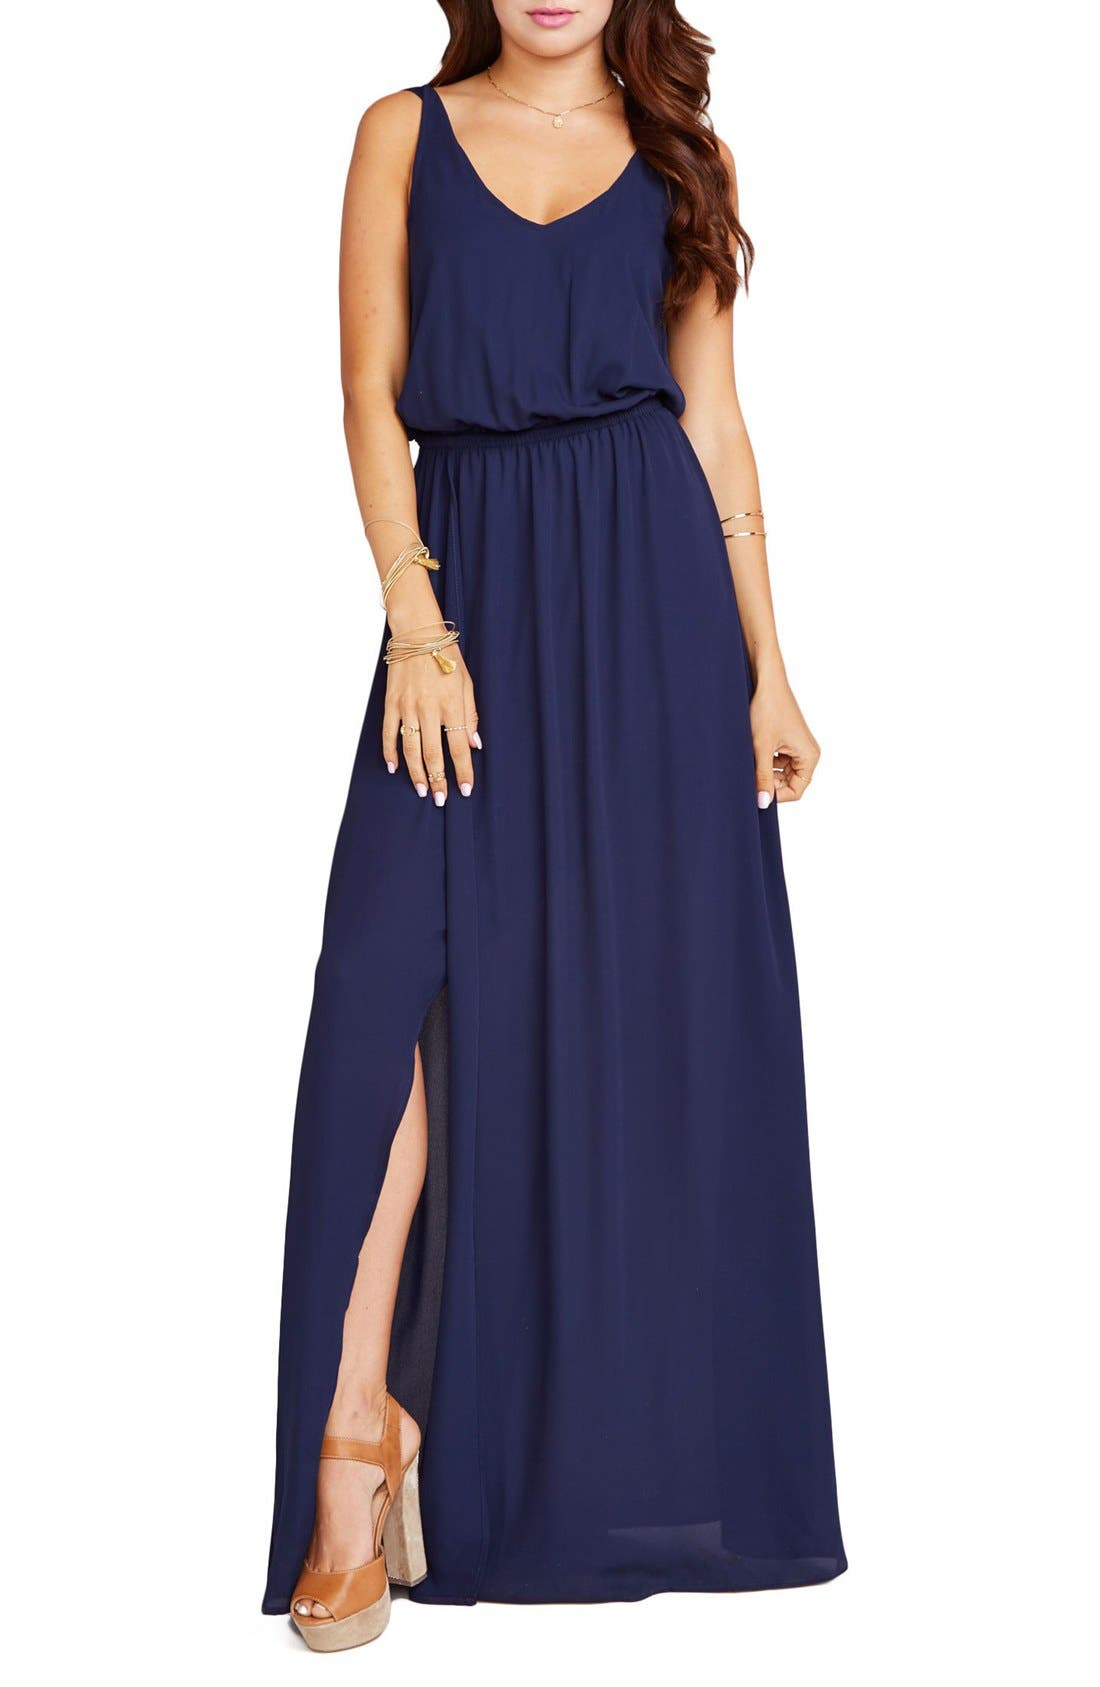 Alternate Image 1 Selected - Show Me Your Mumu Kendall Soft V-Back A-Line Gown